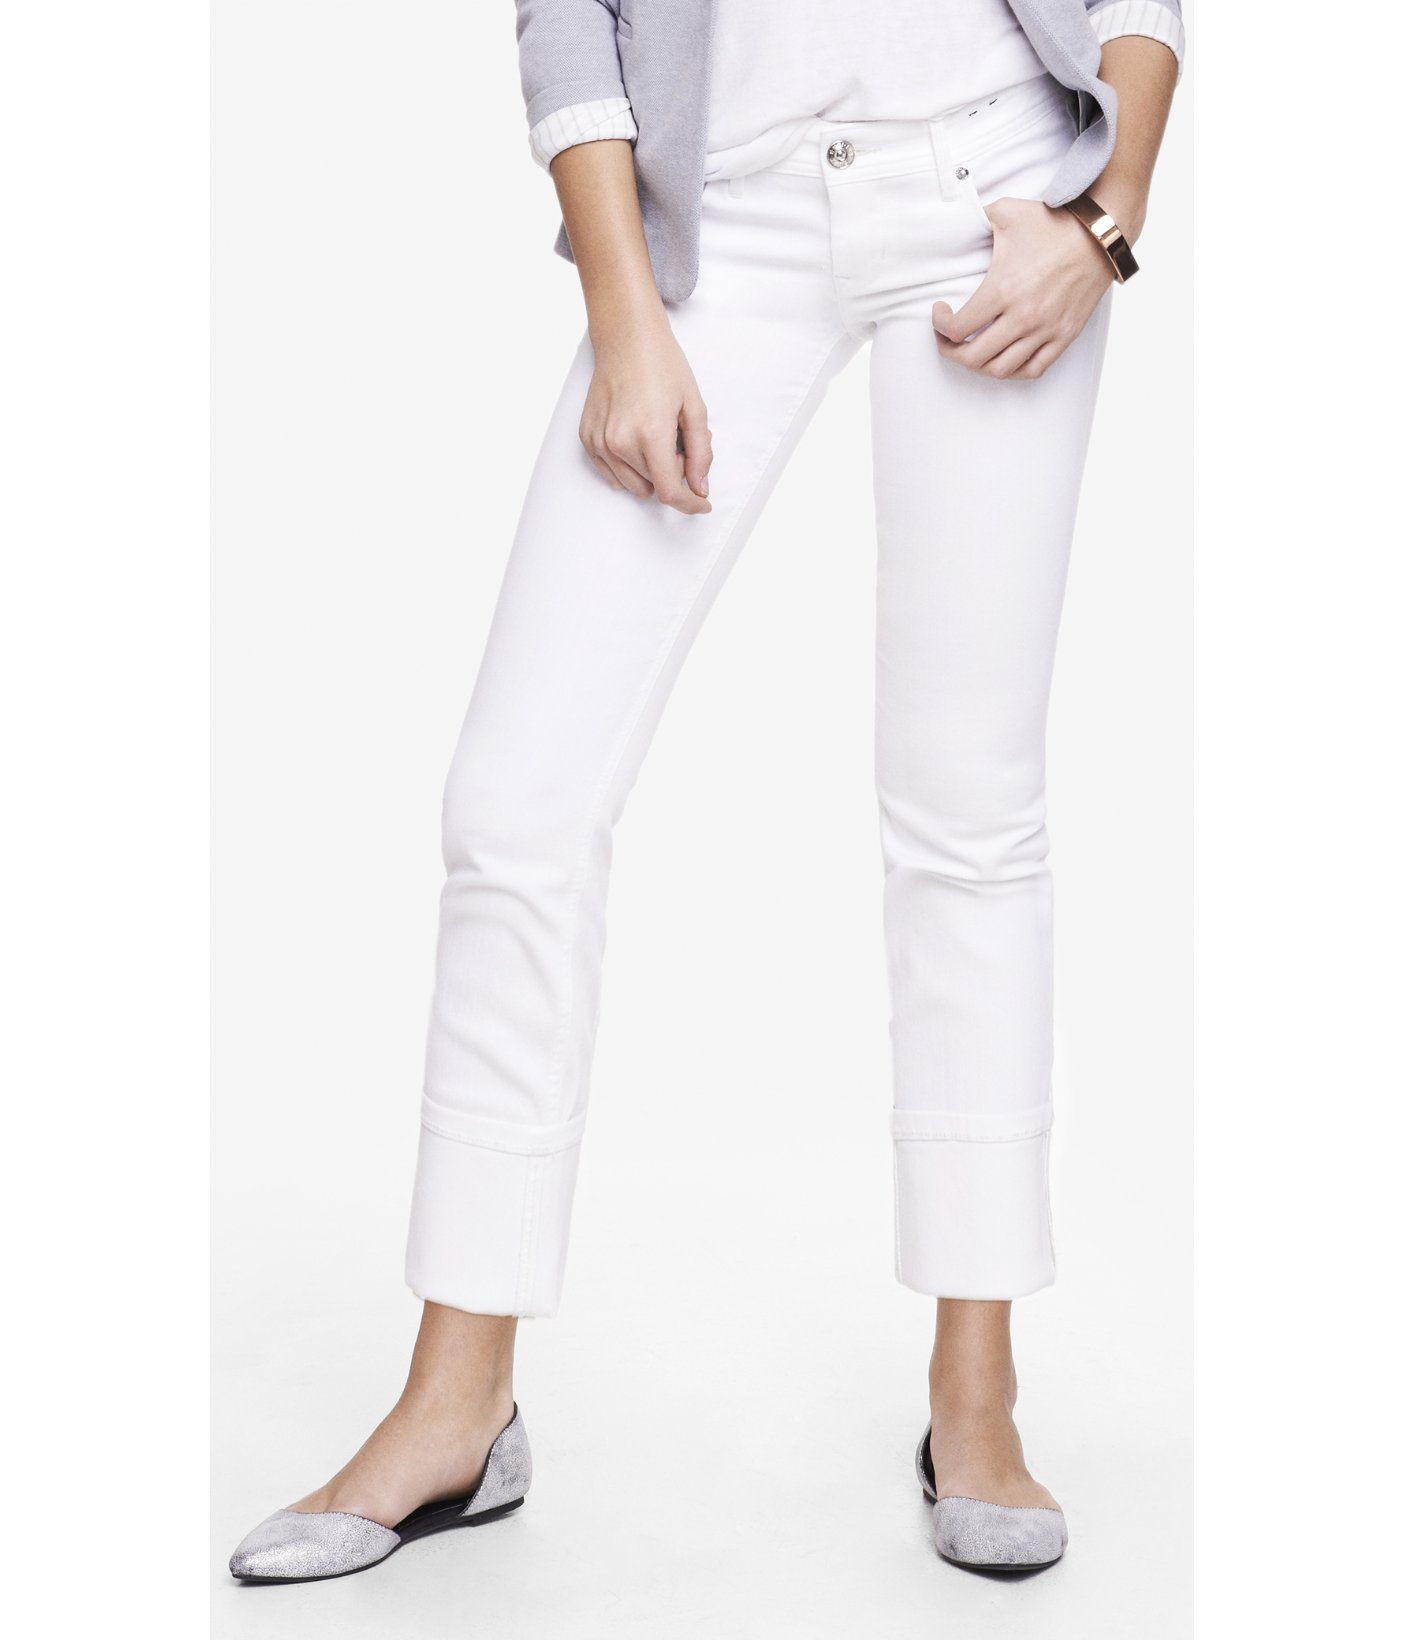 Straight leg or skinny jeans in a dark wash or black will slim your hips and thighs. Wear an eye catching top or statement jewelry to draw the eye to your upper body. Women with slender hips can create the illusion of wider hips with bootcut and flare leg jeans in a light wash.